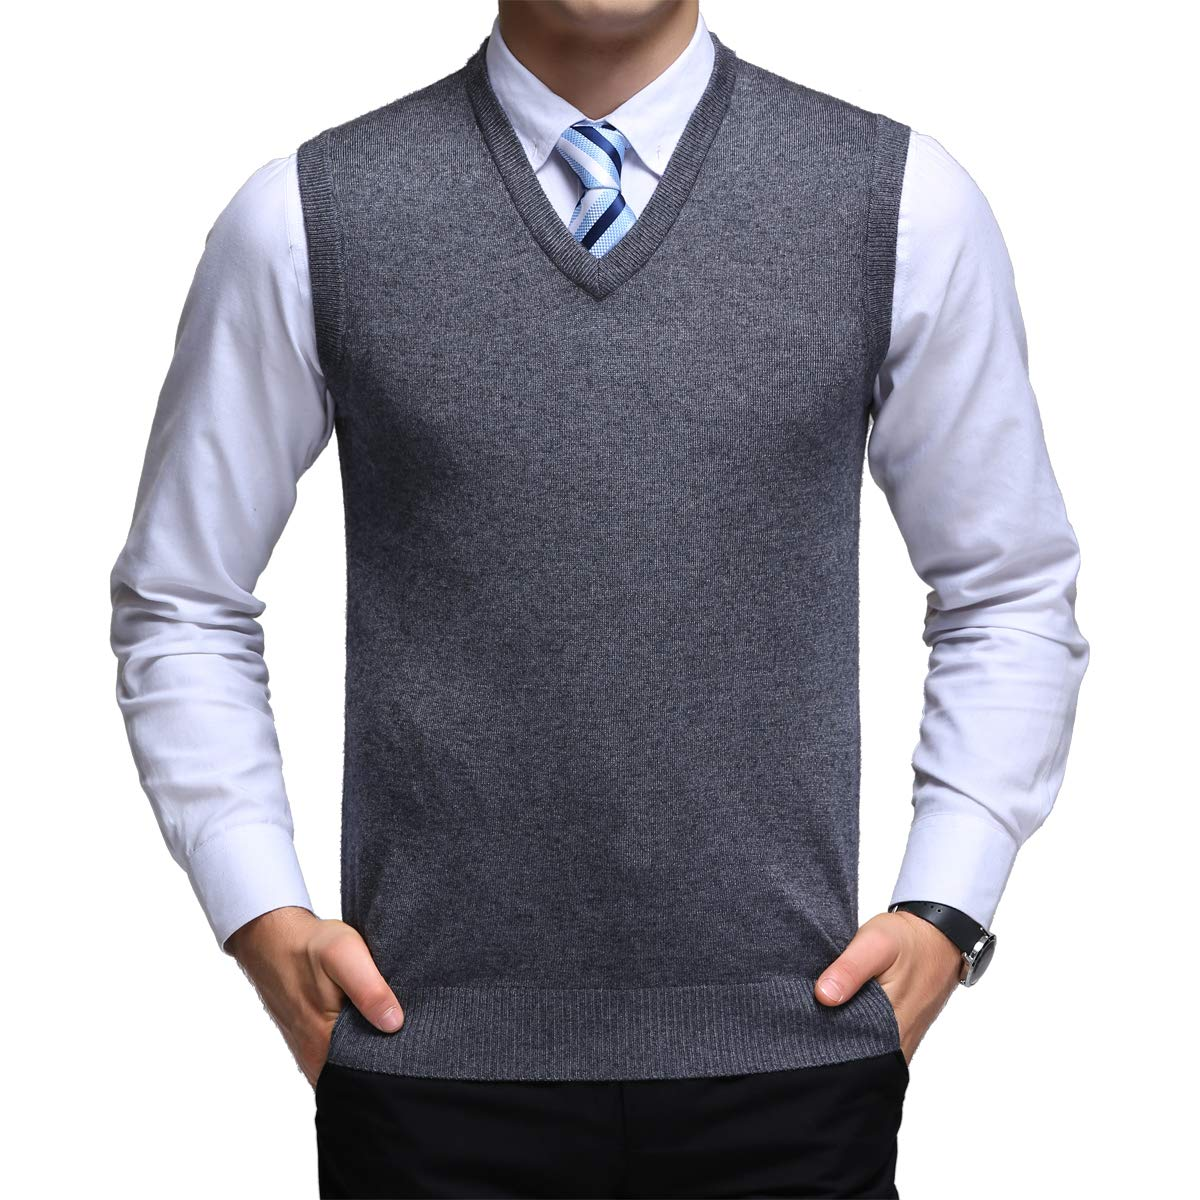 Classic Mens Gilet V Neck Sleeveless Jumper Vest Knitwear Cardigans Knitted Waistcoat Sweater Tank Tops